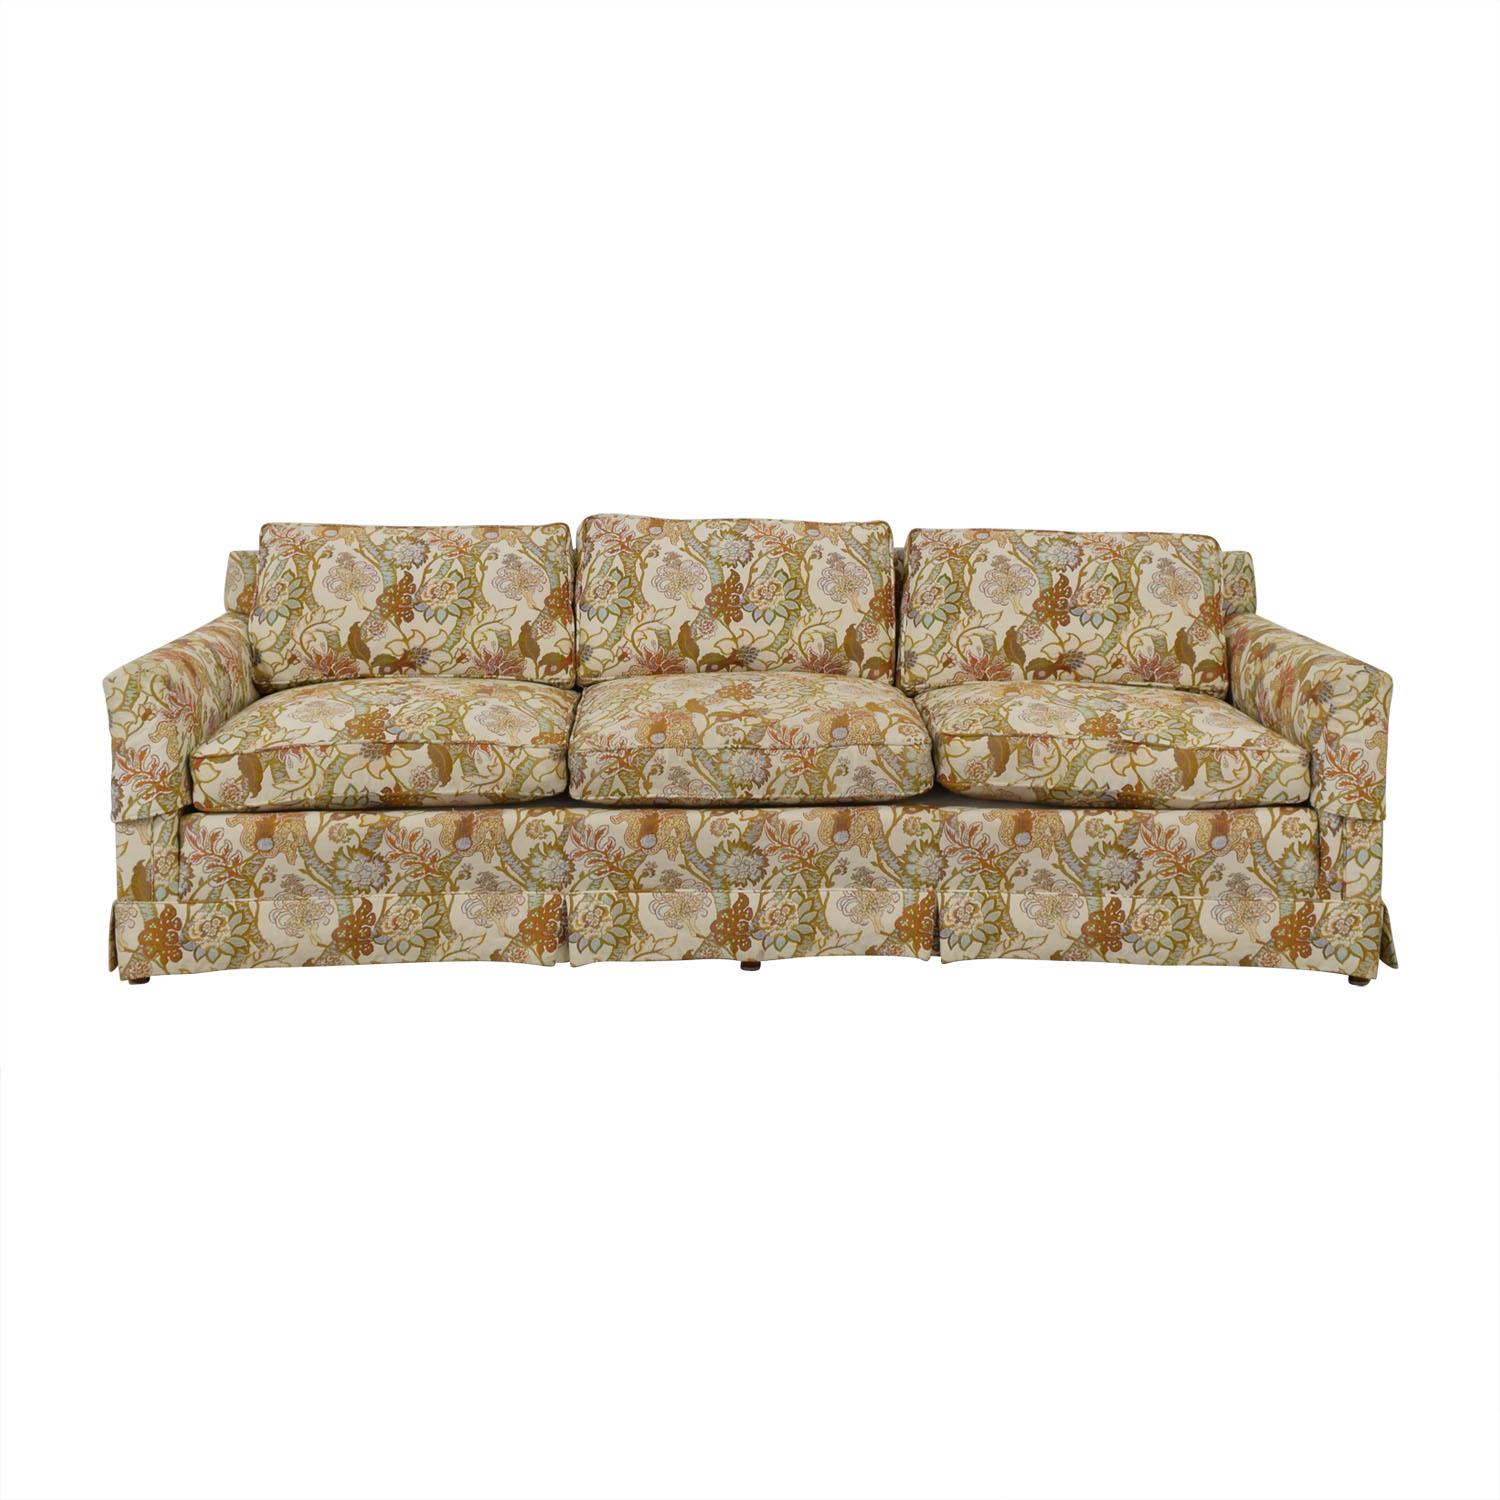 Henredon Furniture Henredon Feather Down Floral Three-Cushion Couch for sale